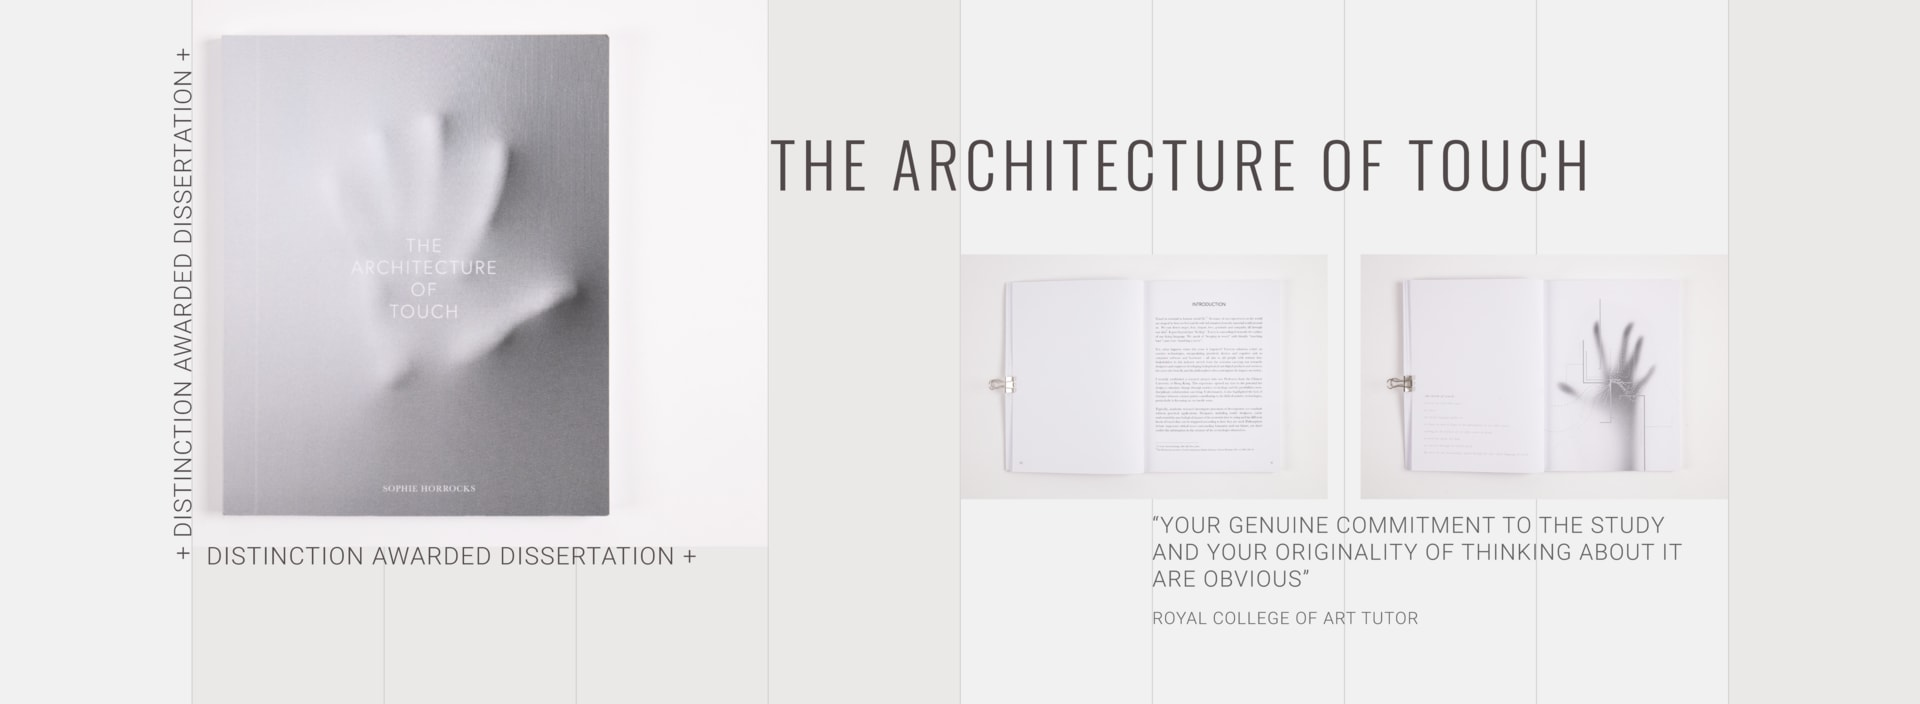 The Architecture of Touch